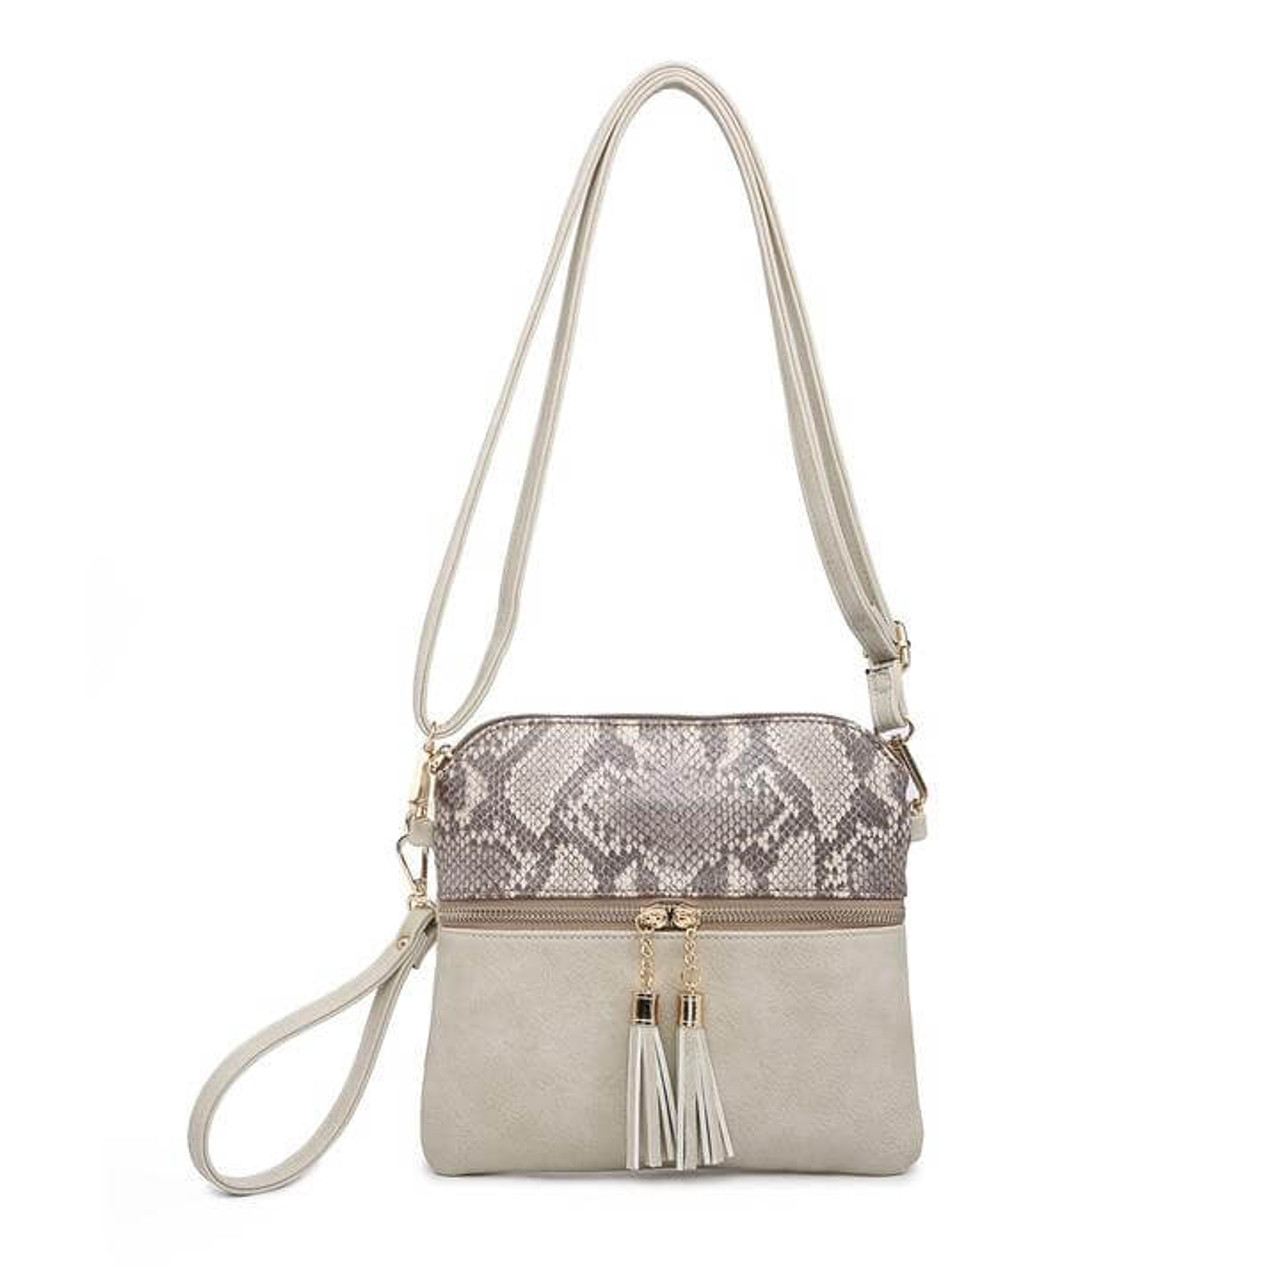 This zippered, tassel bag has a removable/adjustable shoulder strap, gold tone hardware, and a zipper top closure. It also zipper pockets on front and back; inside has a zipper pocket and a slip pocket.